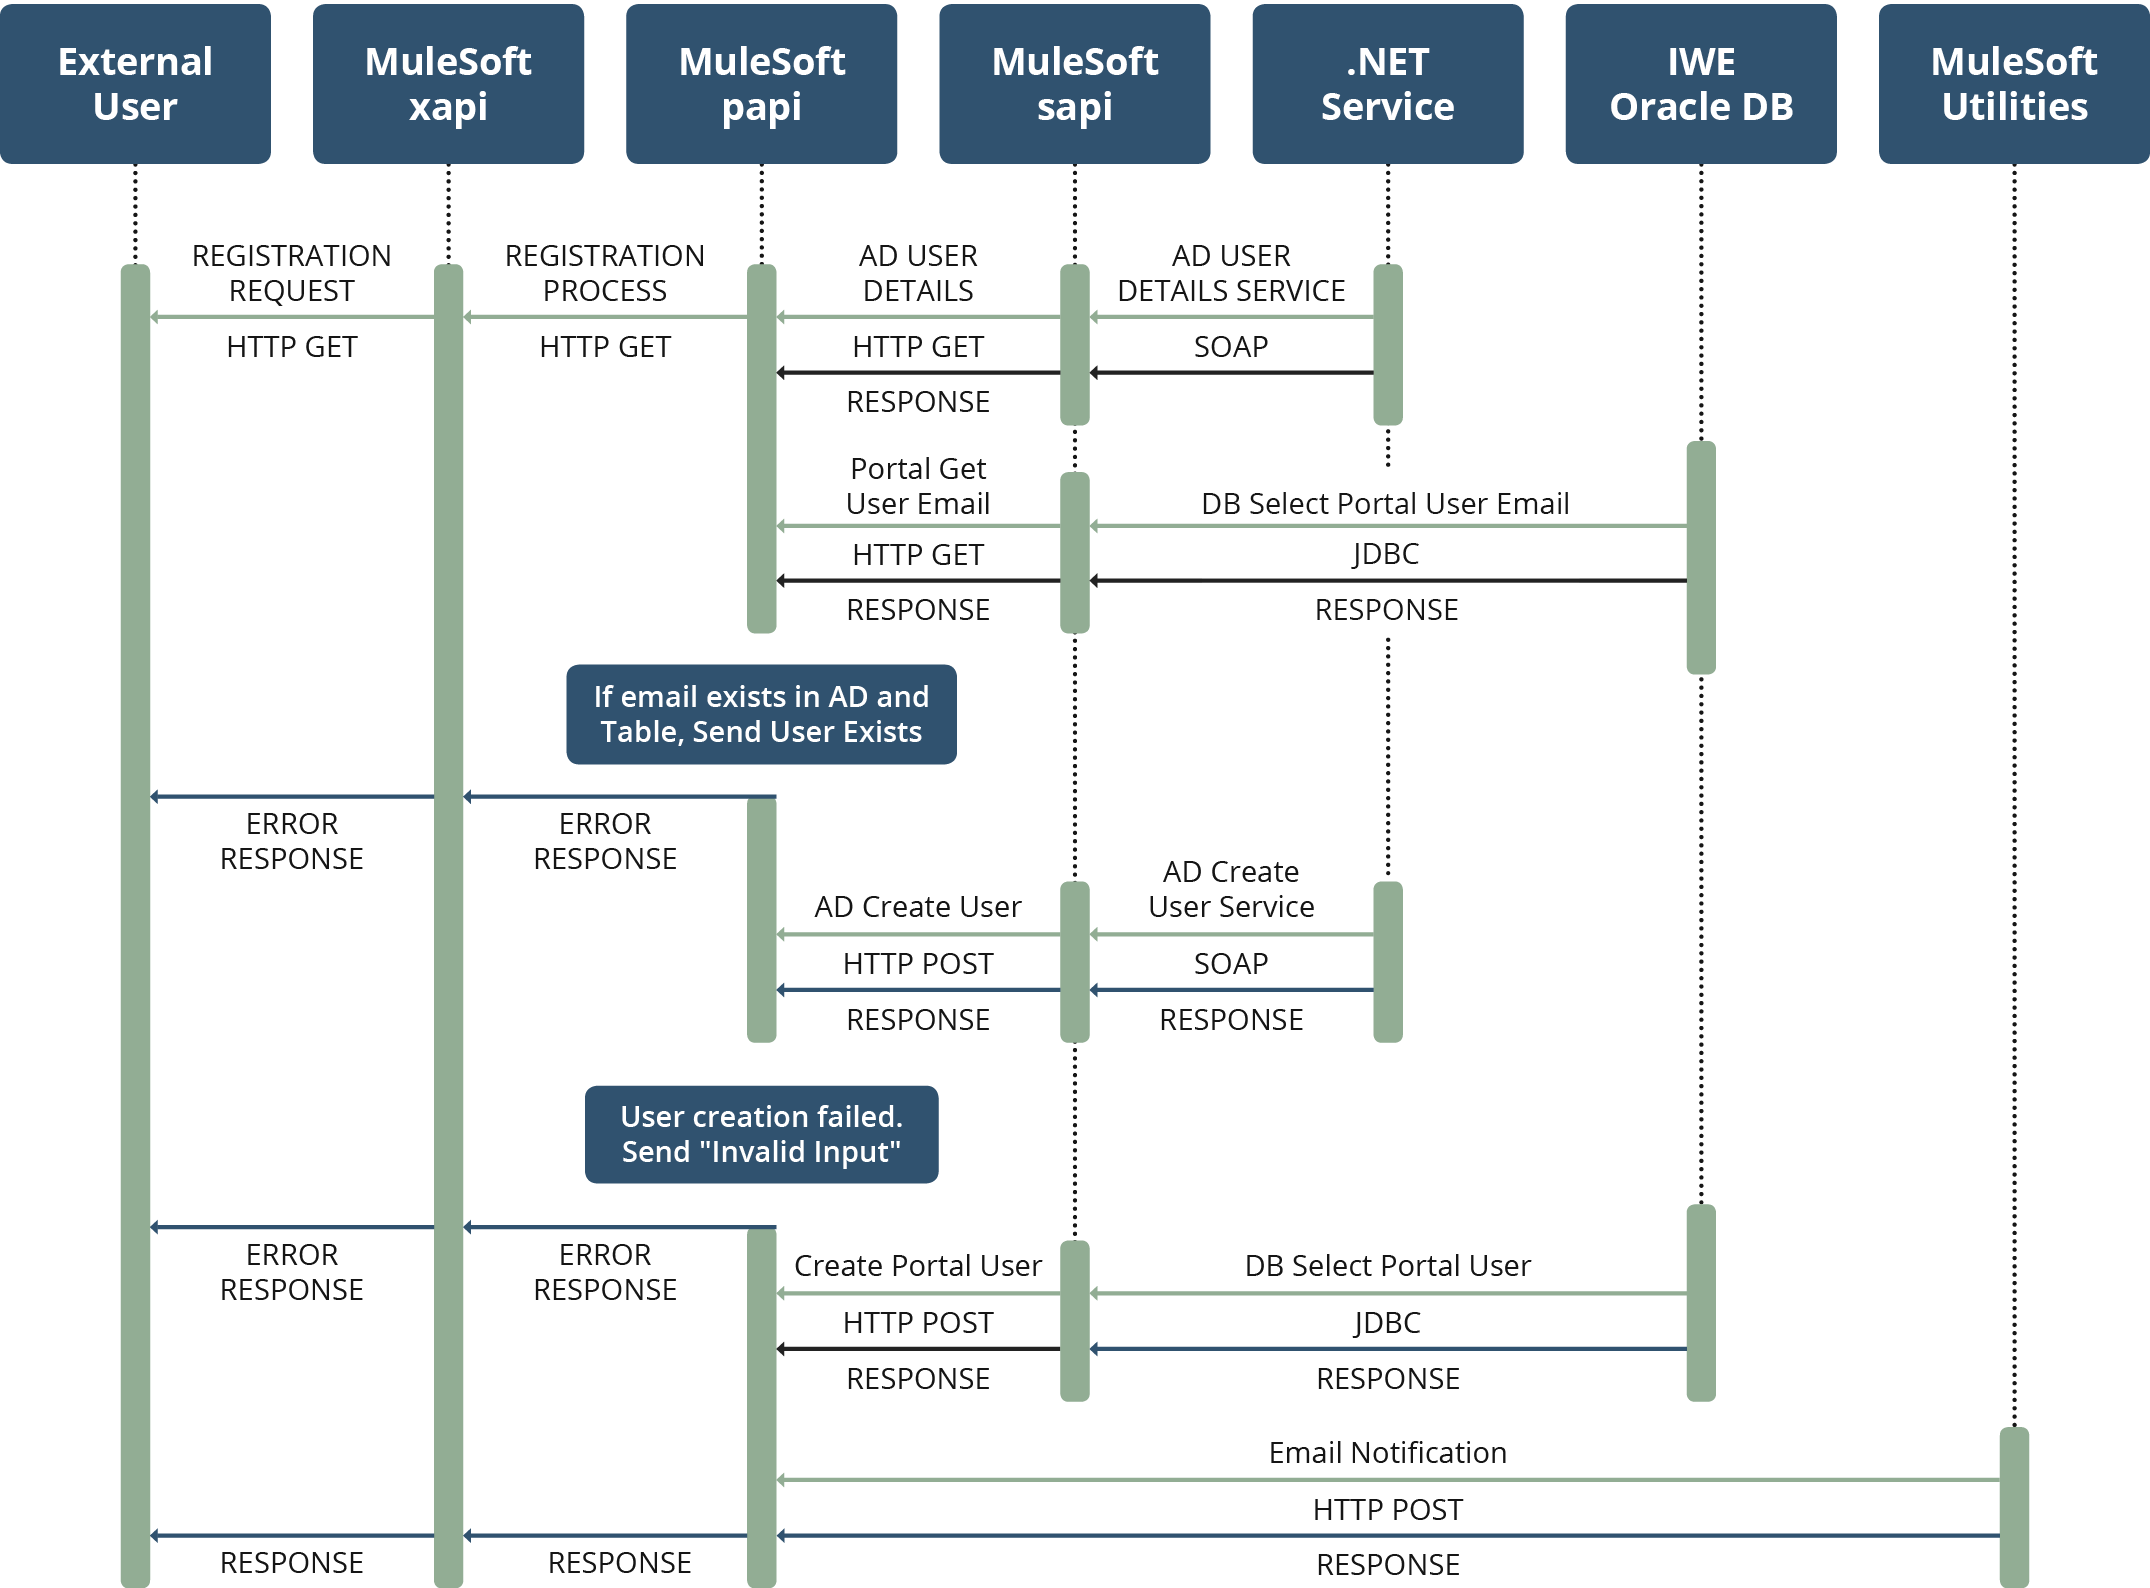 Diagram of Mobile Registration Application Solution Process using MuleSoft